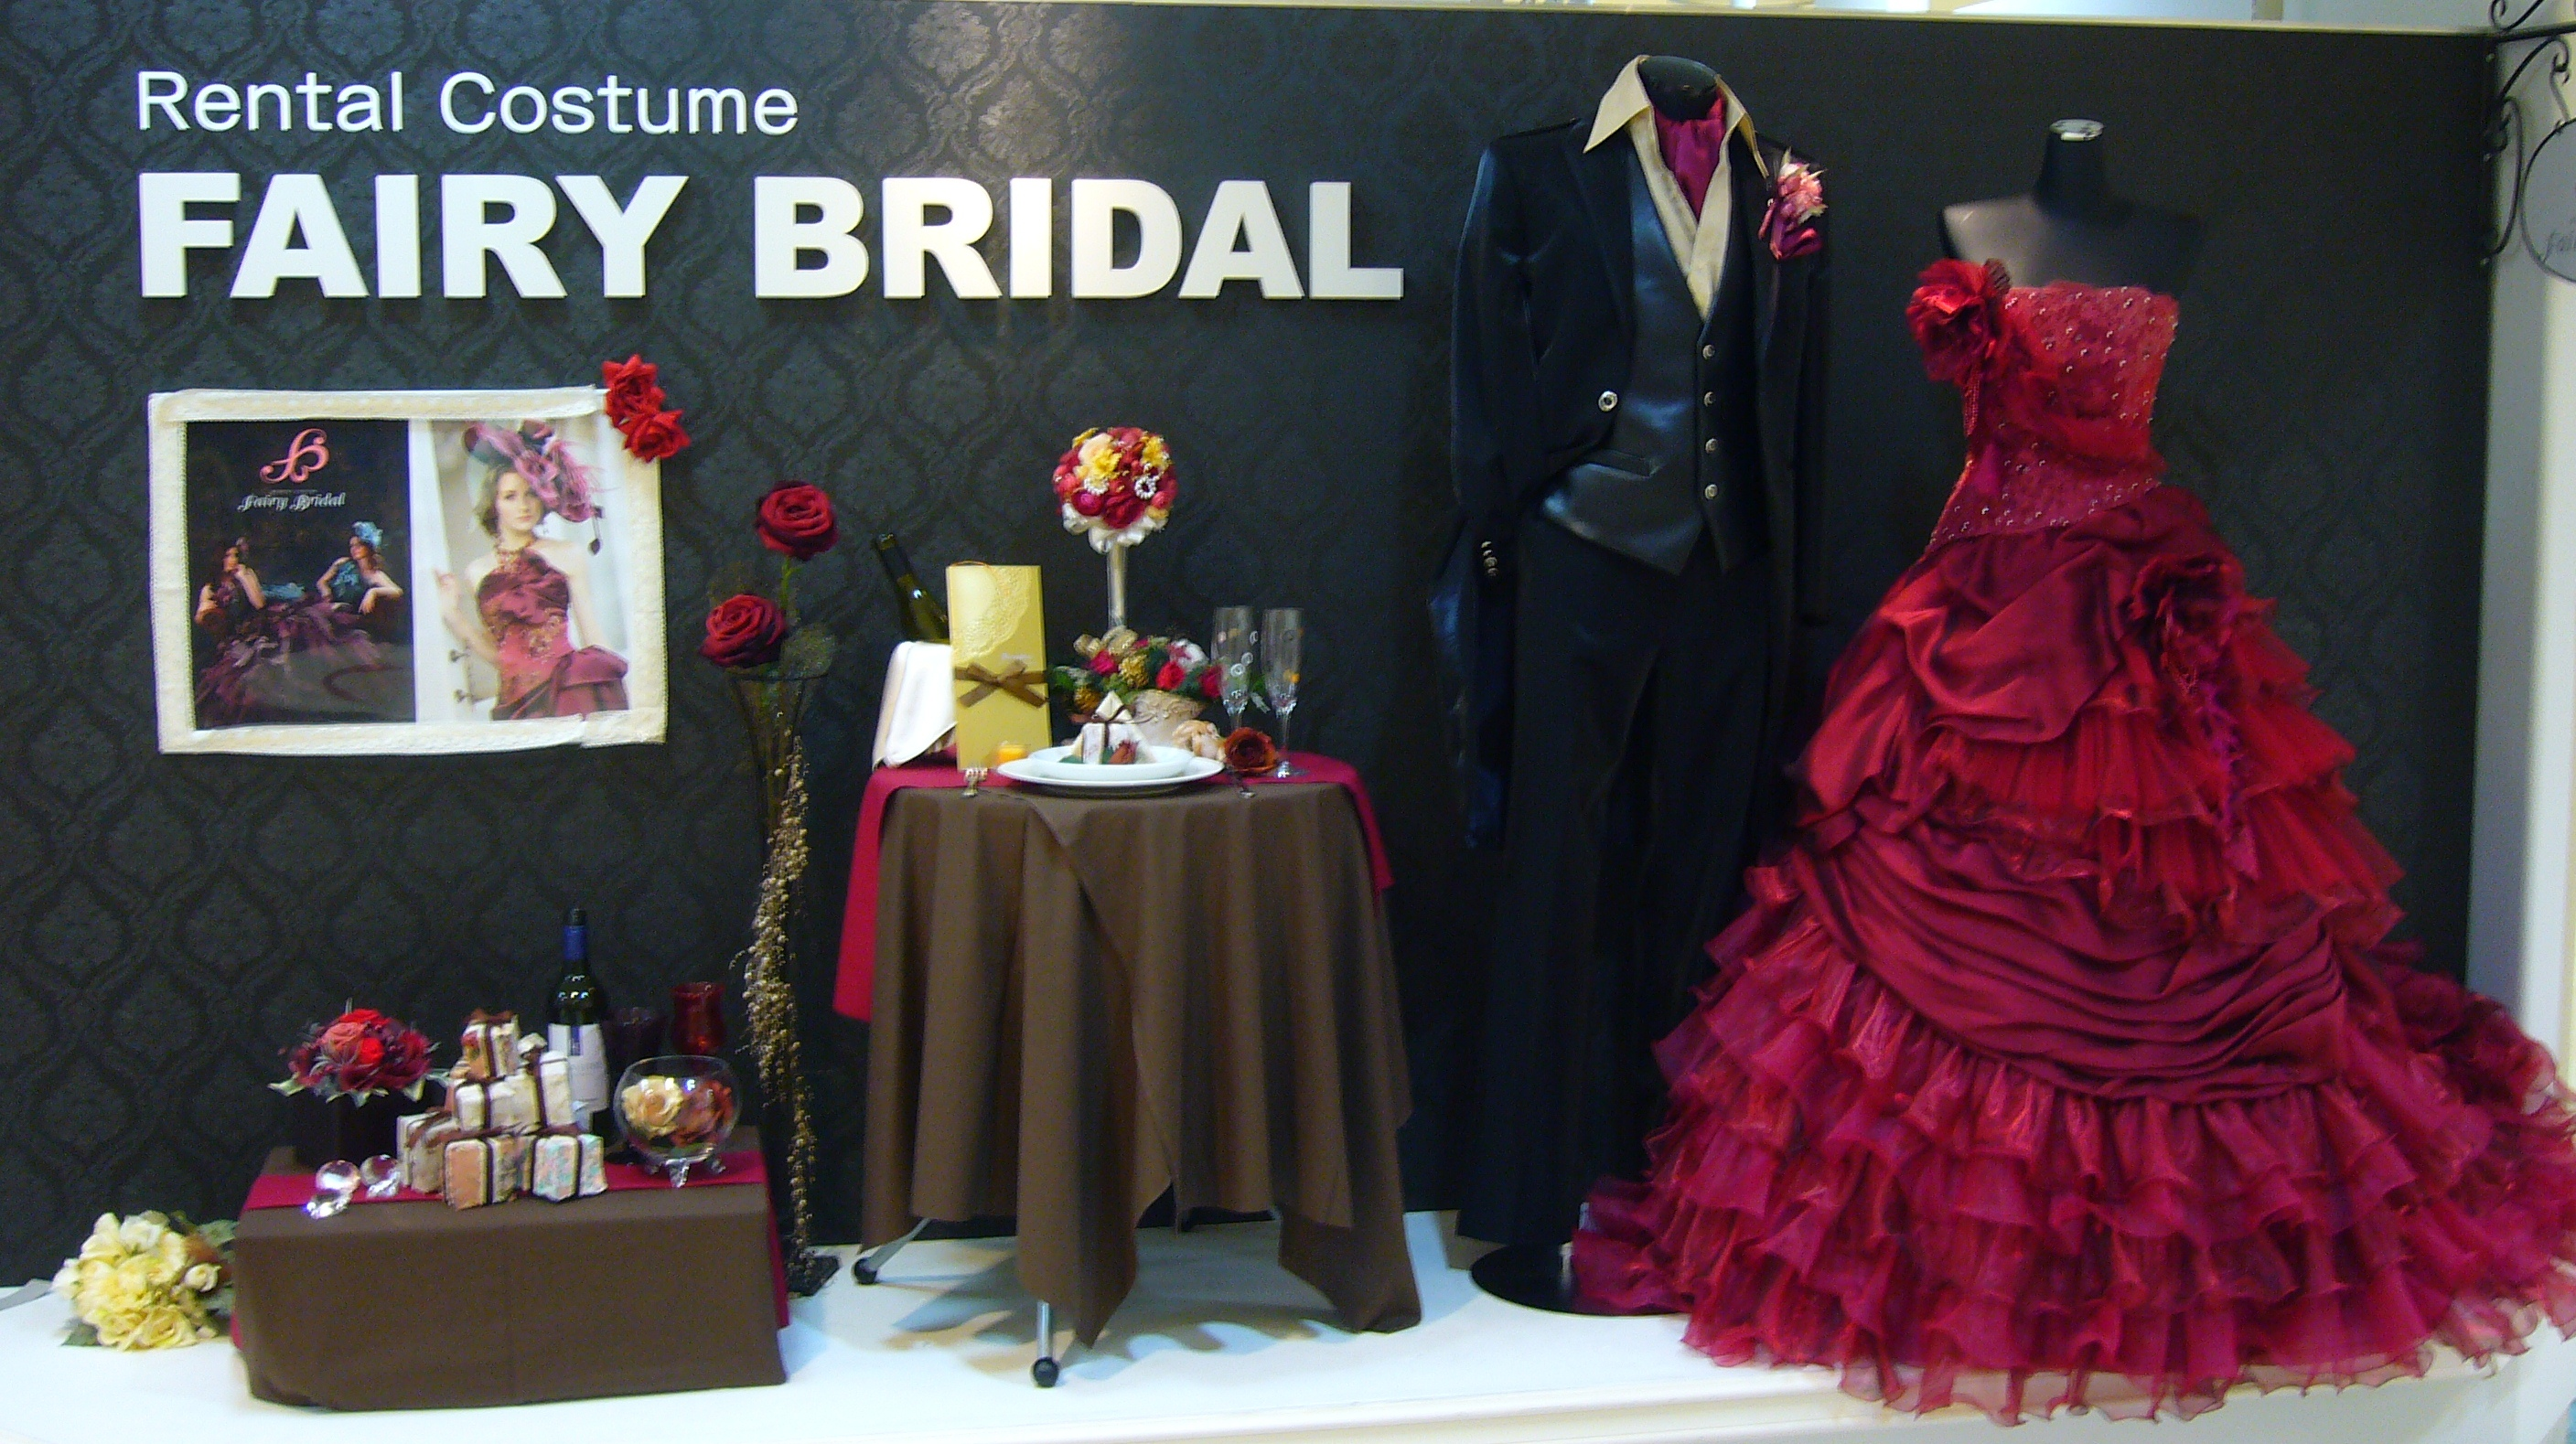 japanese wedding rental wedding dresses japanese wedding dress 3 Wedding dress rental shop